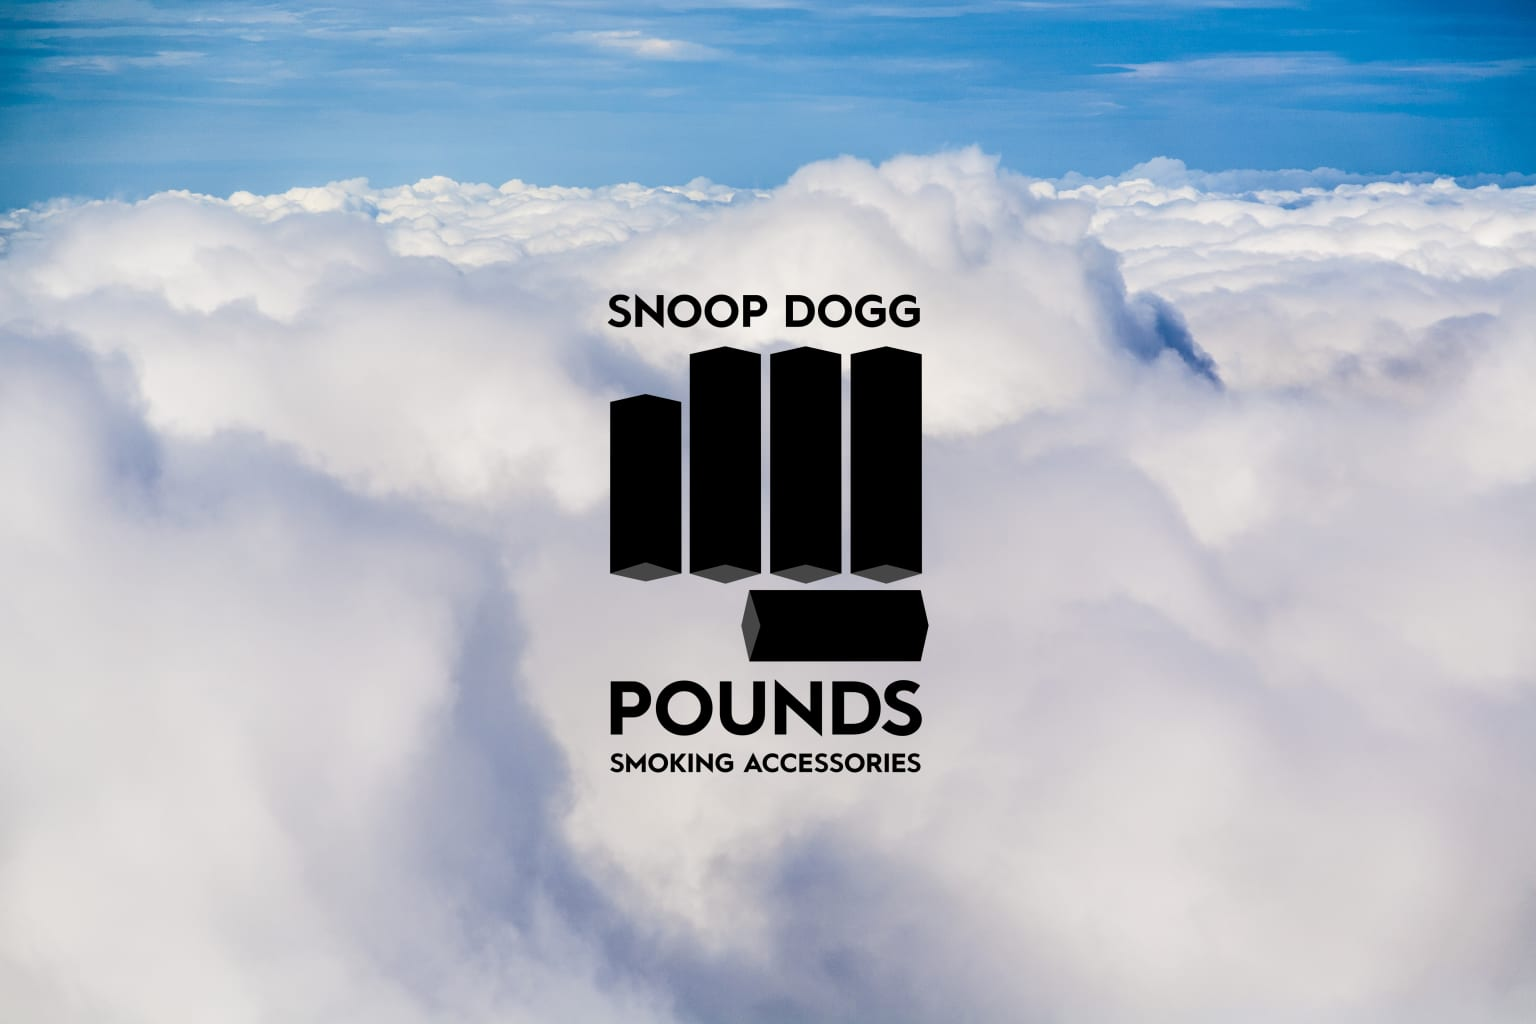 Snoop Dogg Pounds Smoking Accessories